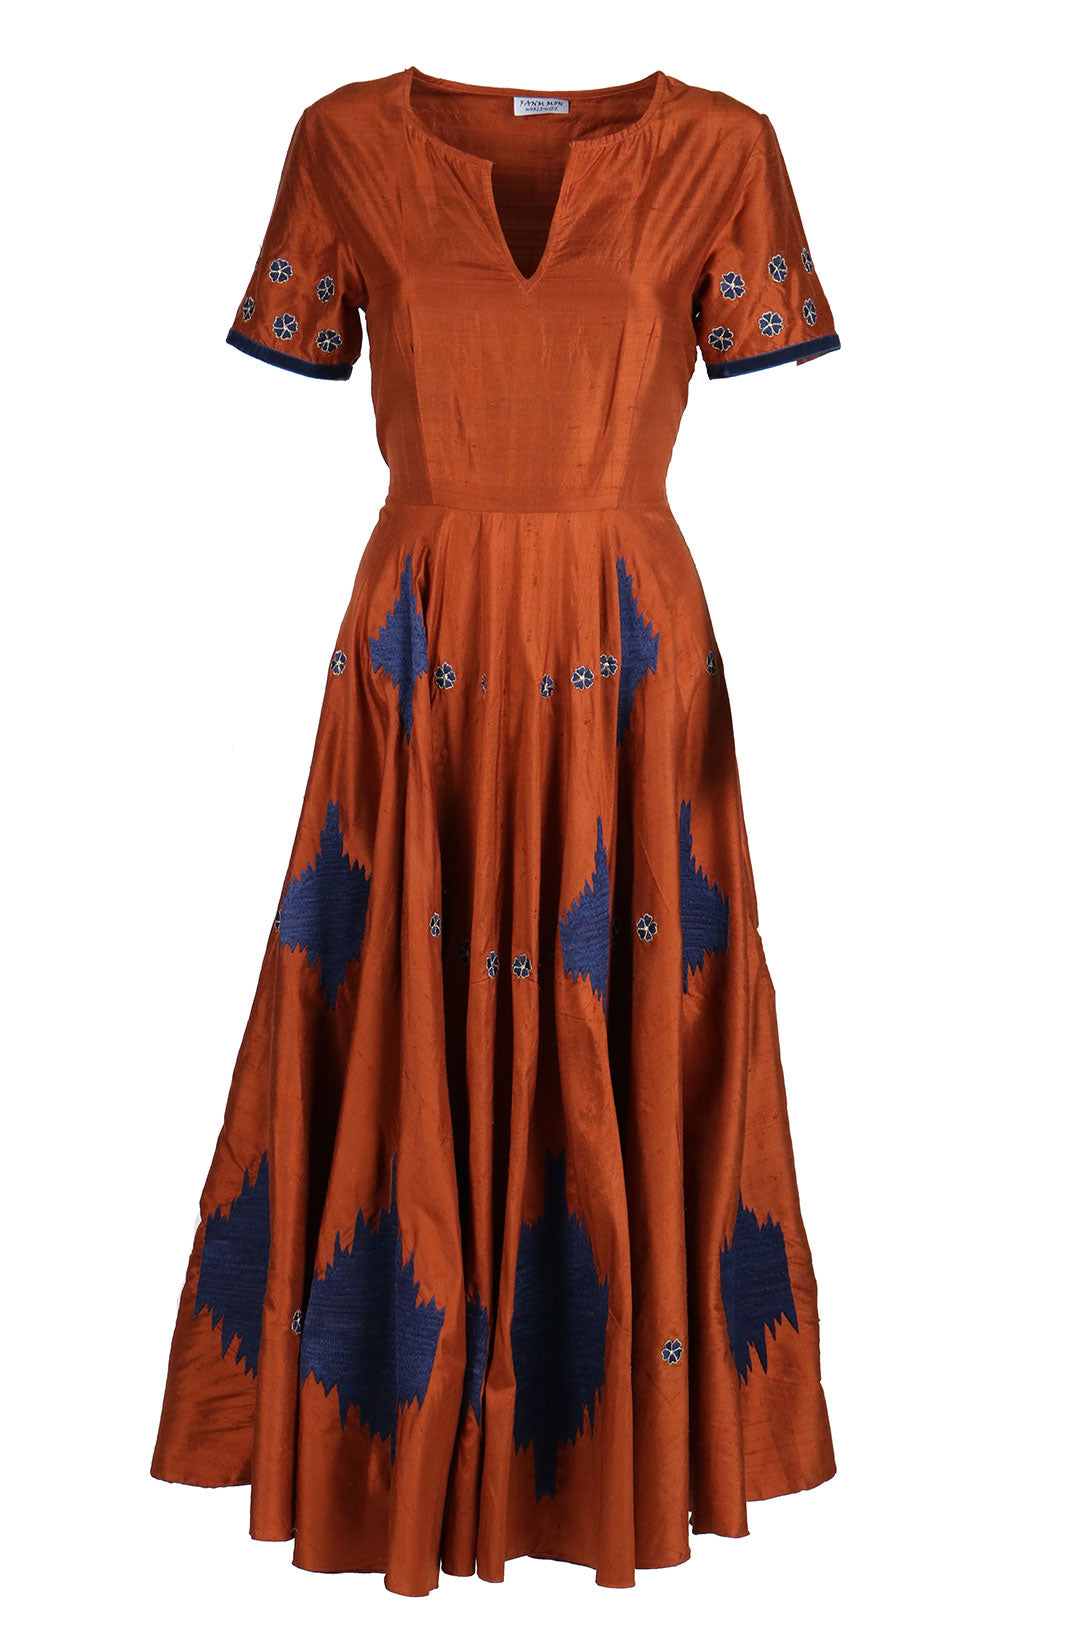 Fanm Mon PLEIN Copper Linen Navy Geometric Embroidered MIDI Dress Vyshyvanka